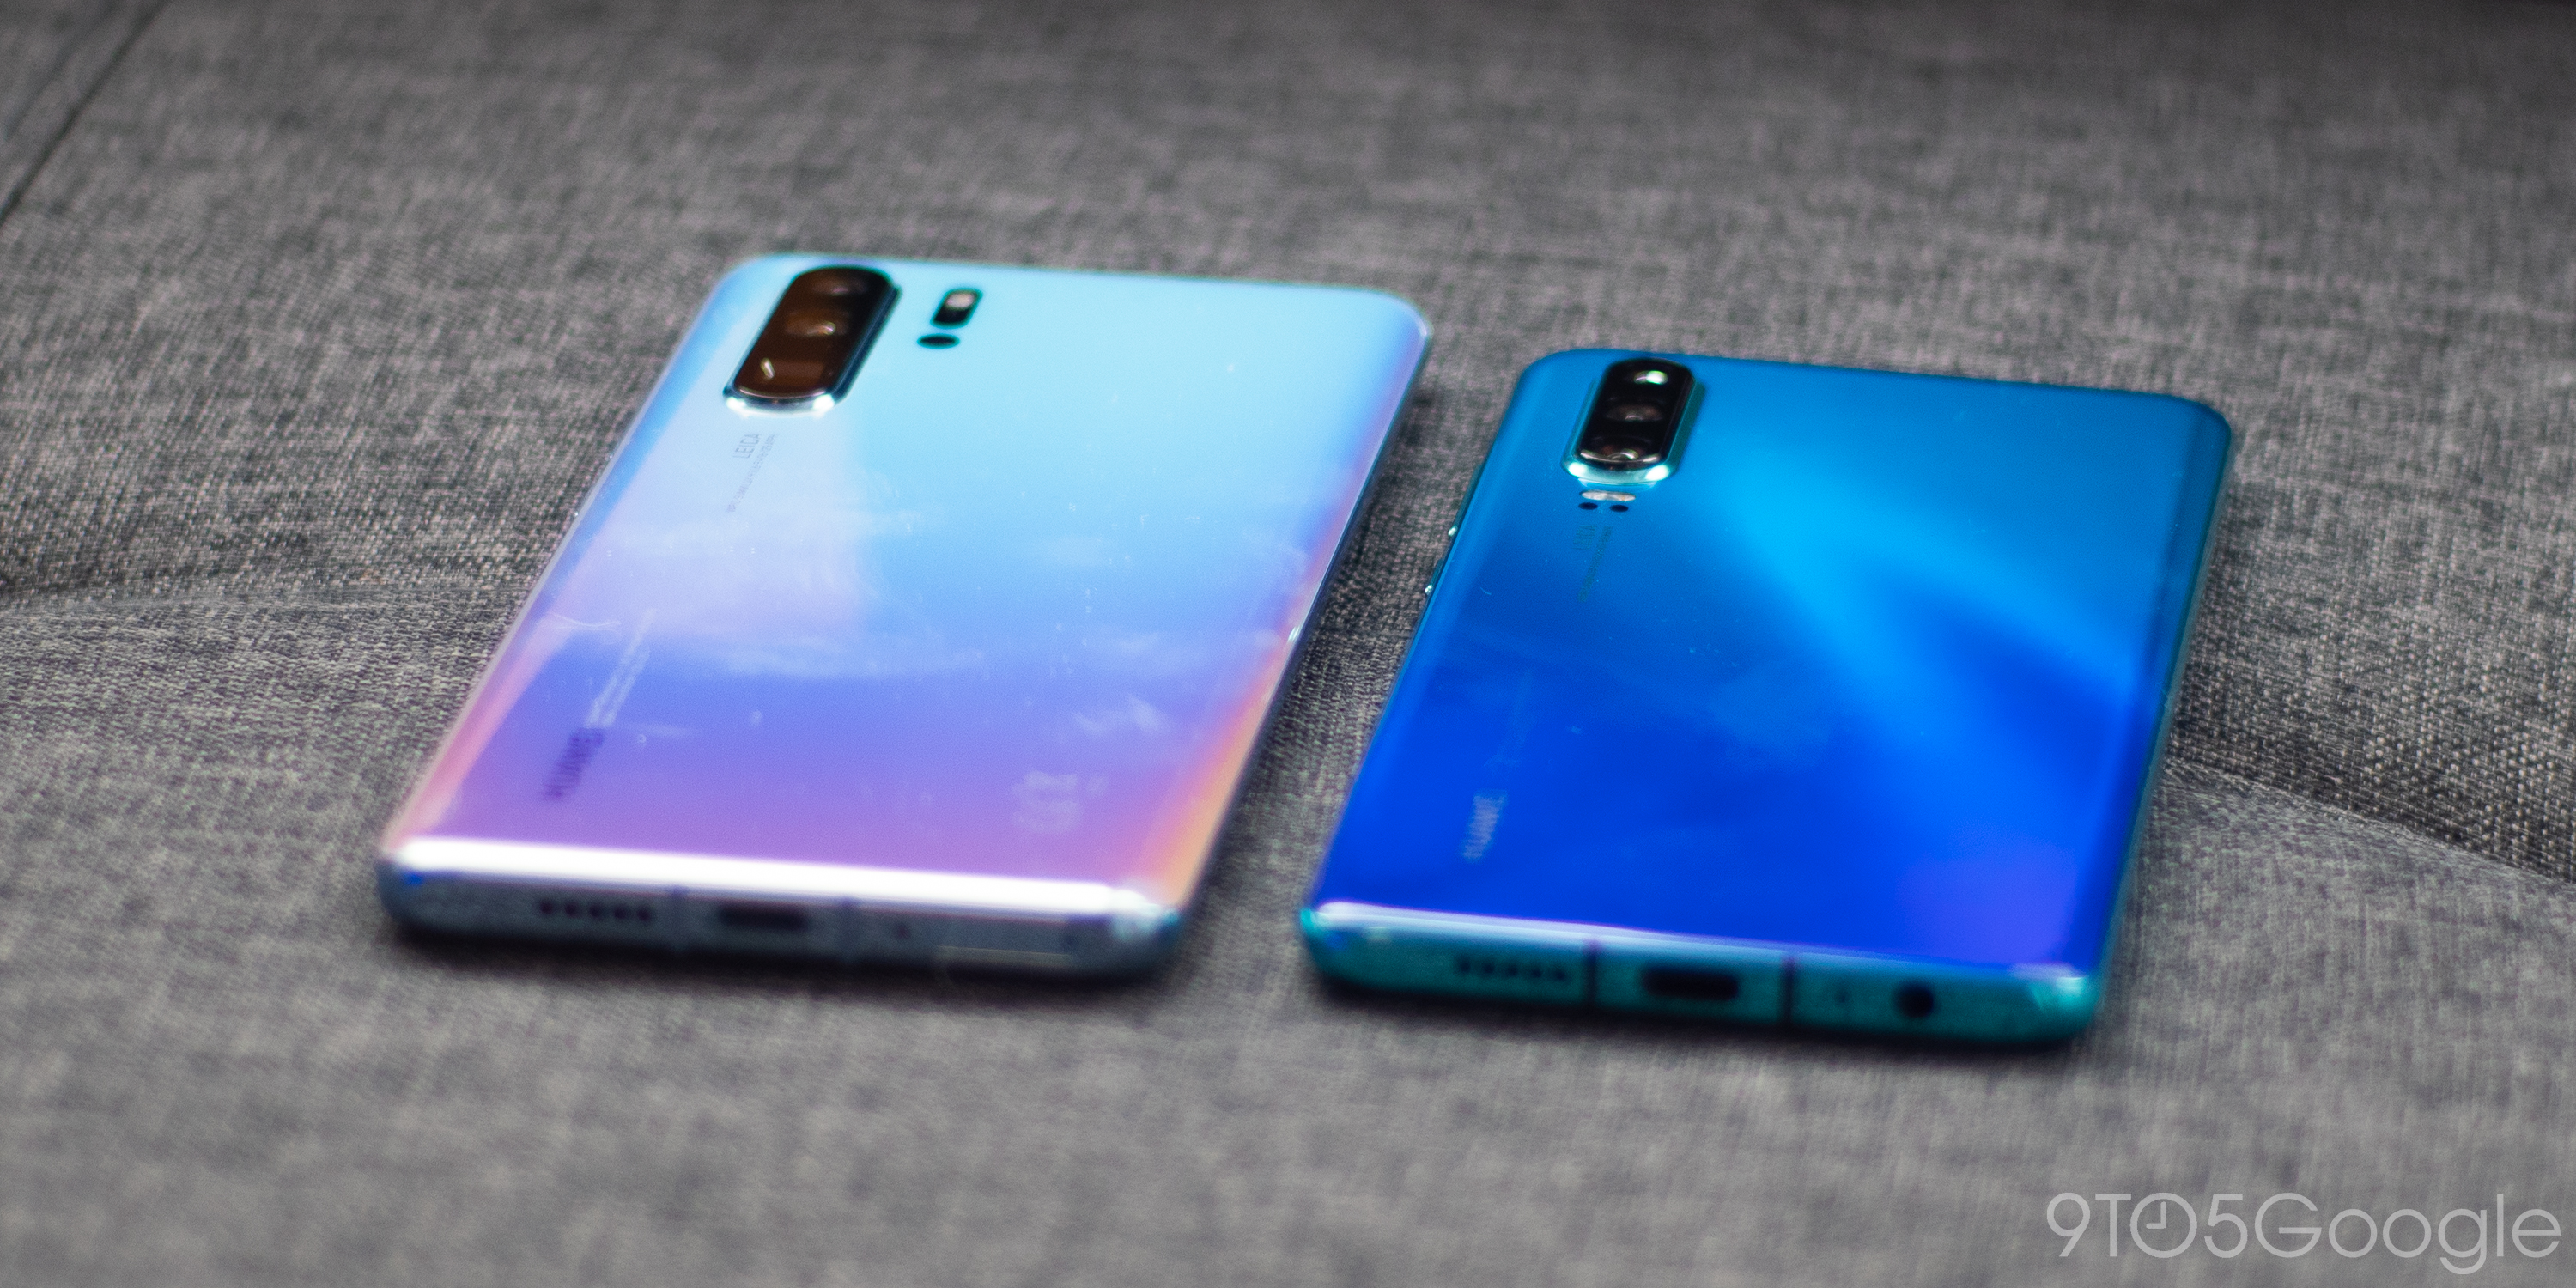 Huawei smartphone listings are starting to disappear from B&H Photo